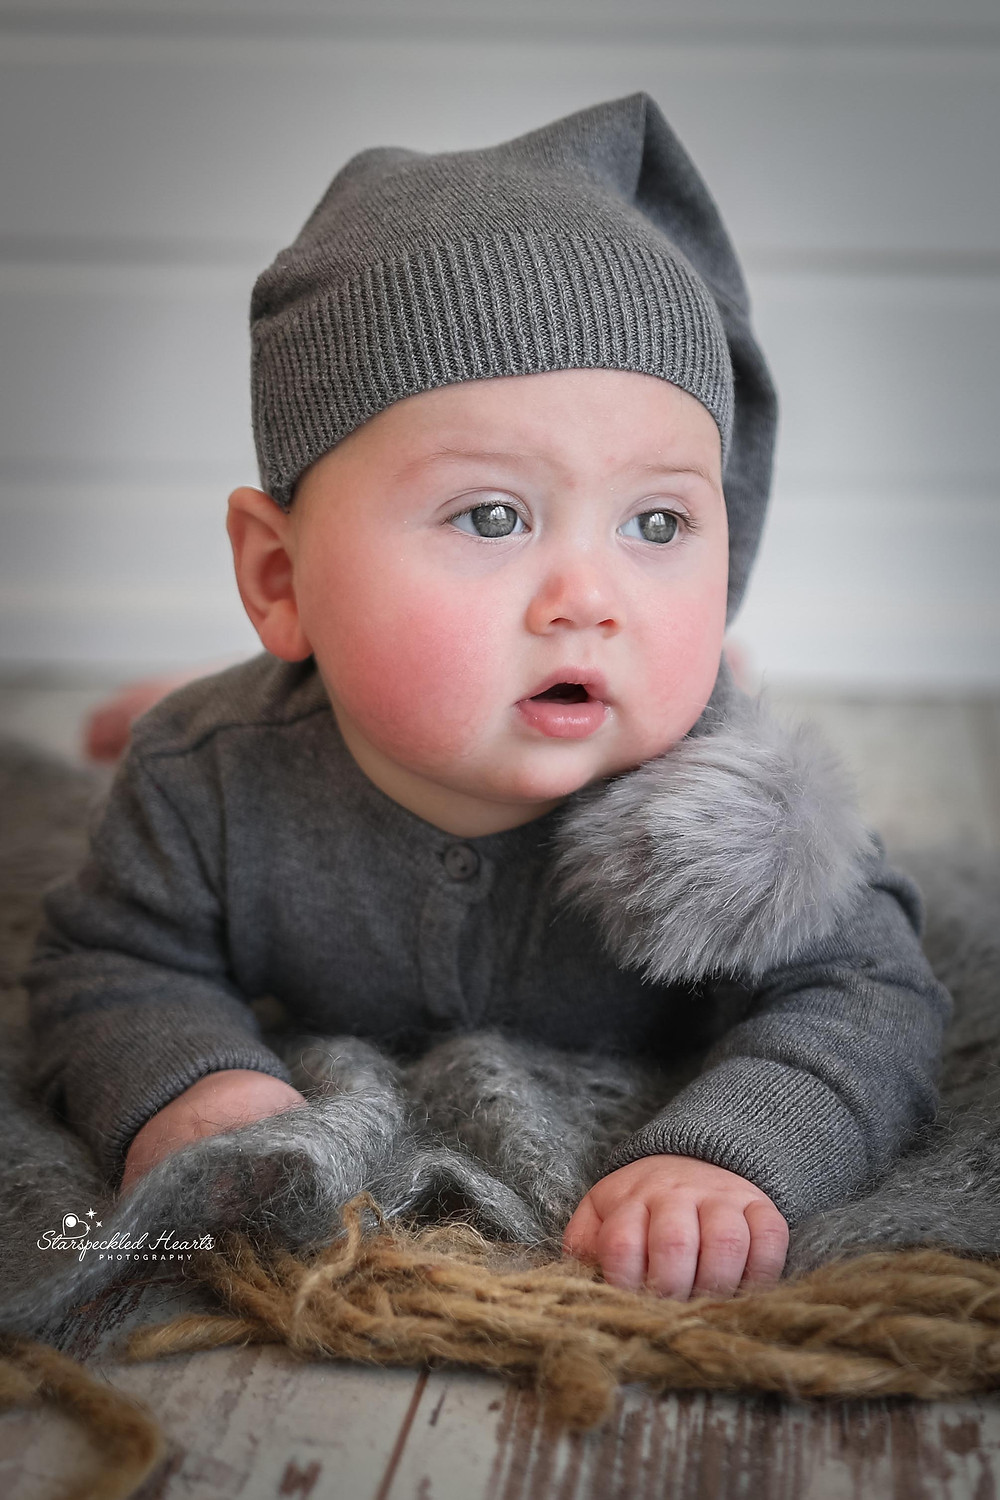 gorgeous baby boy wearing a grey hat with a pompom on the end